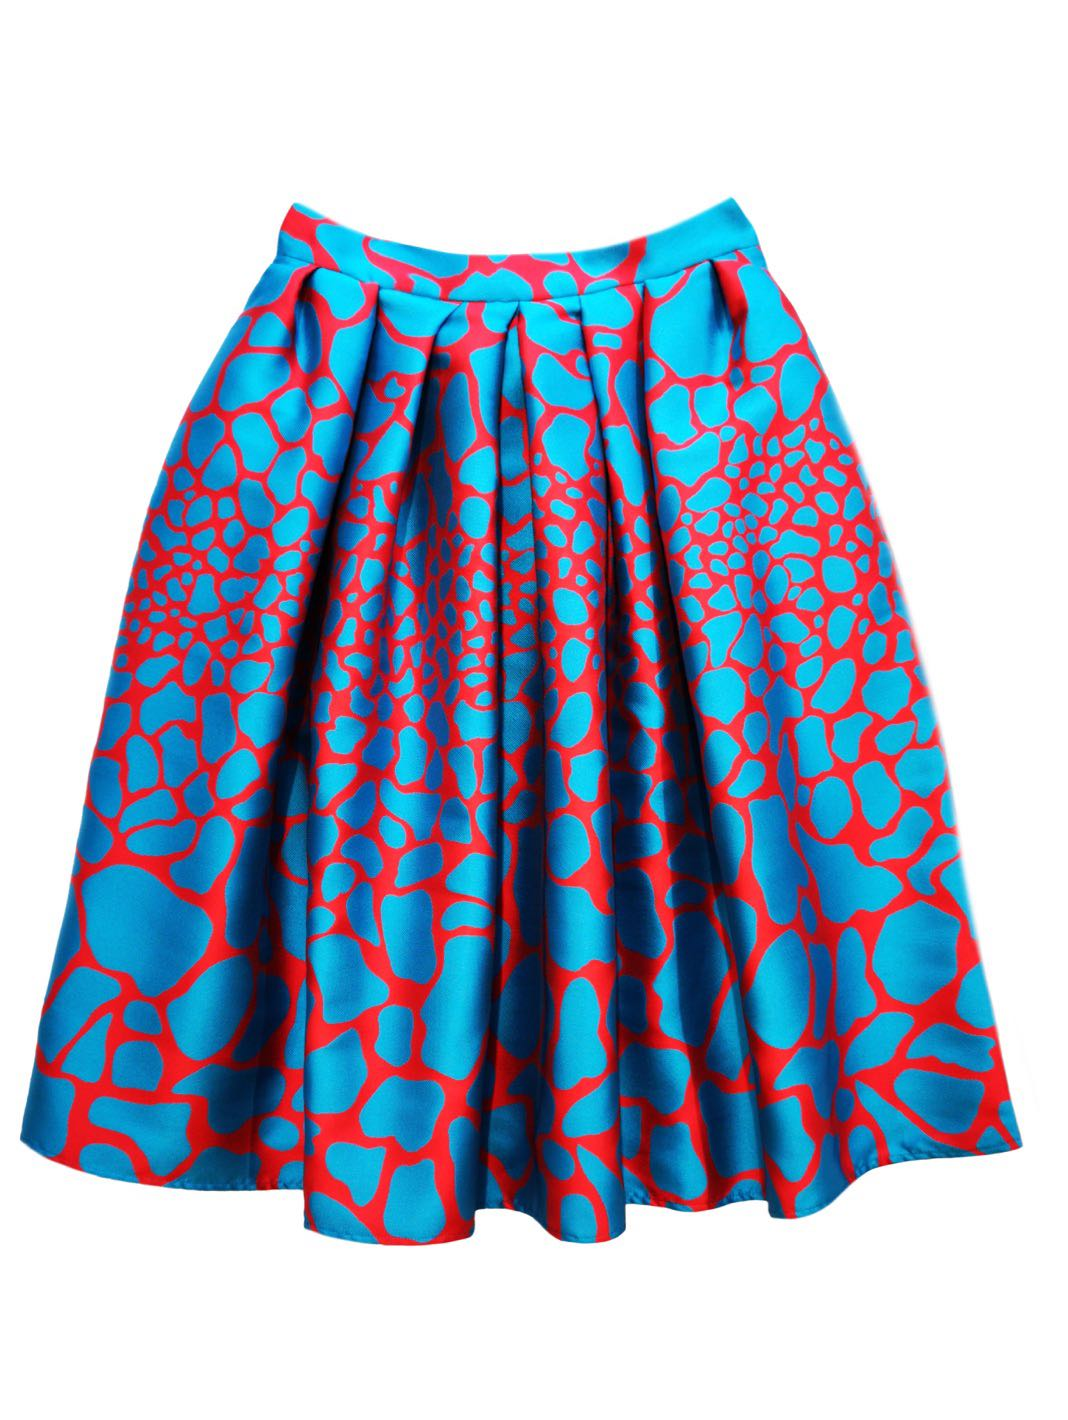 Giraffe-Print Circle Skirt - The Bobby Boga